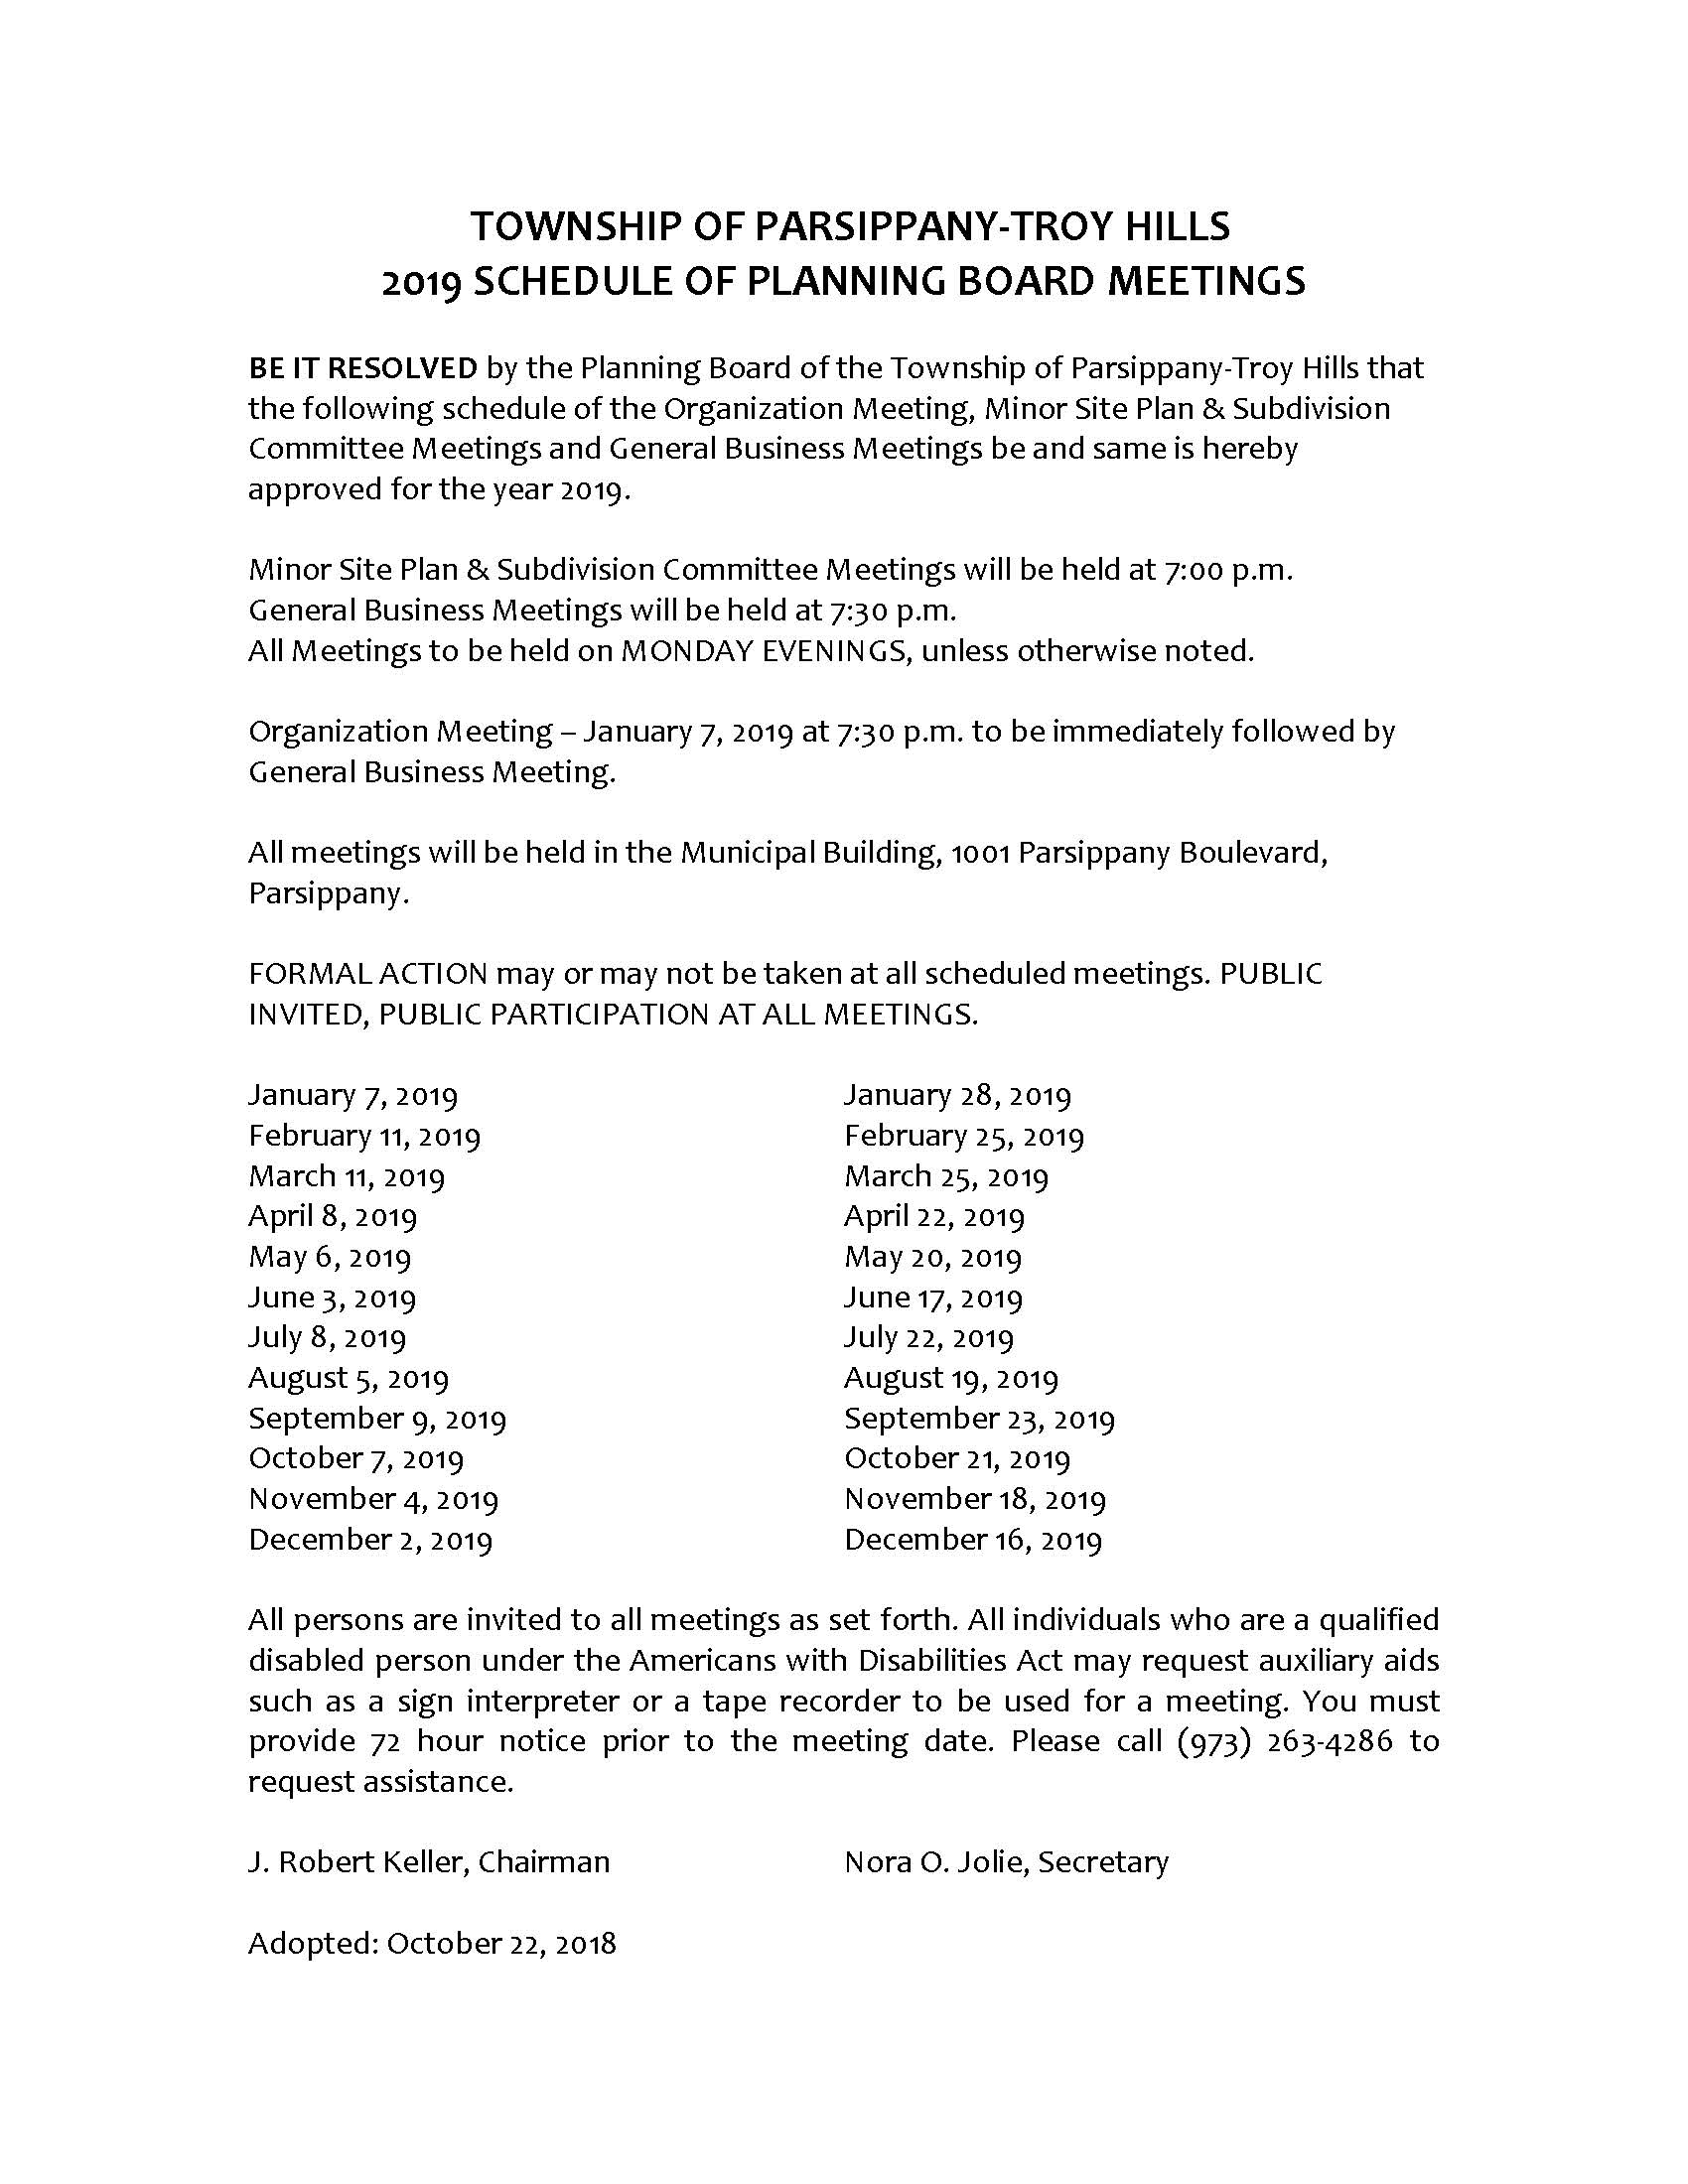 2019 Planning Board Meeting Schedule